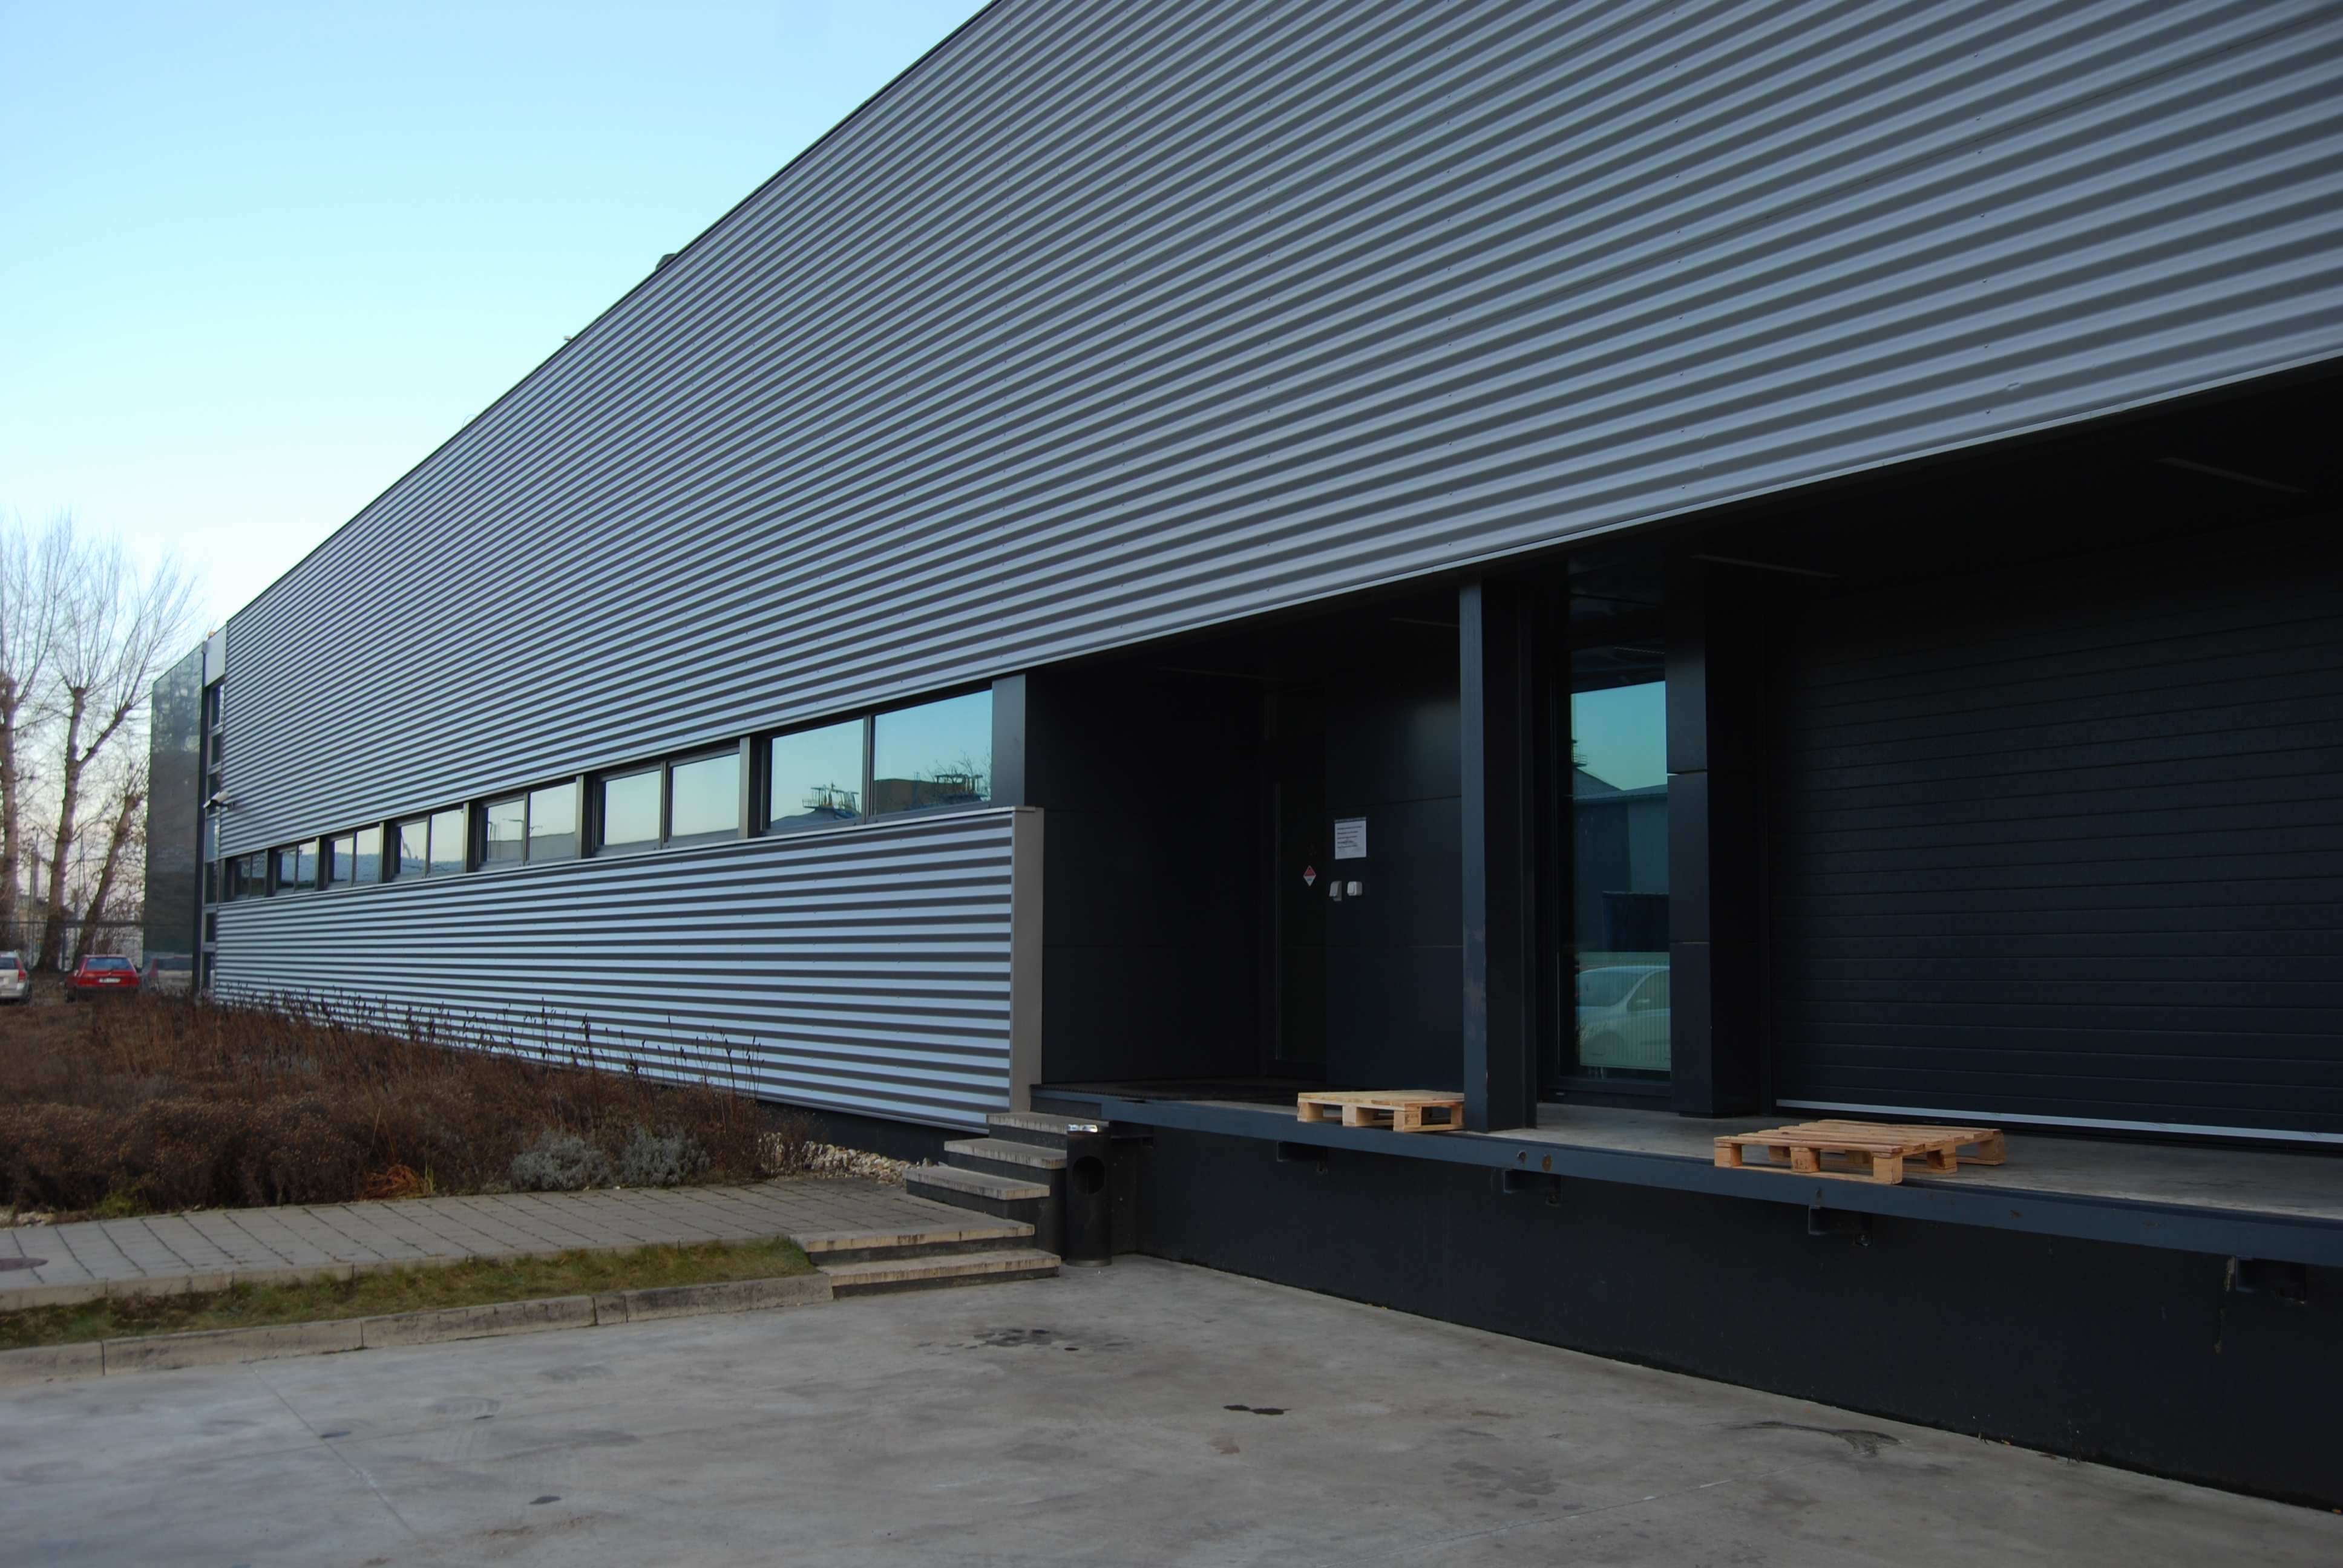 Corrugated Metal Panels Facade Wwwimgkidcom The